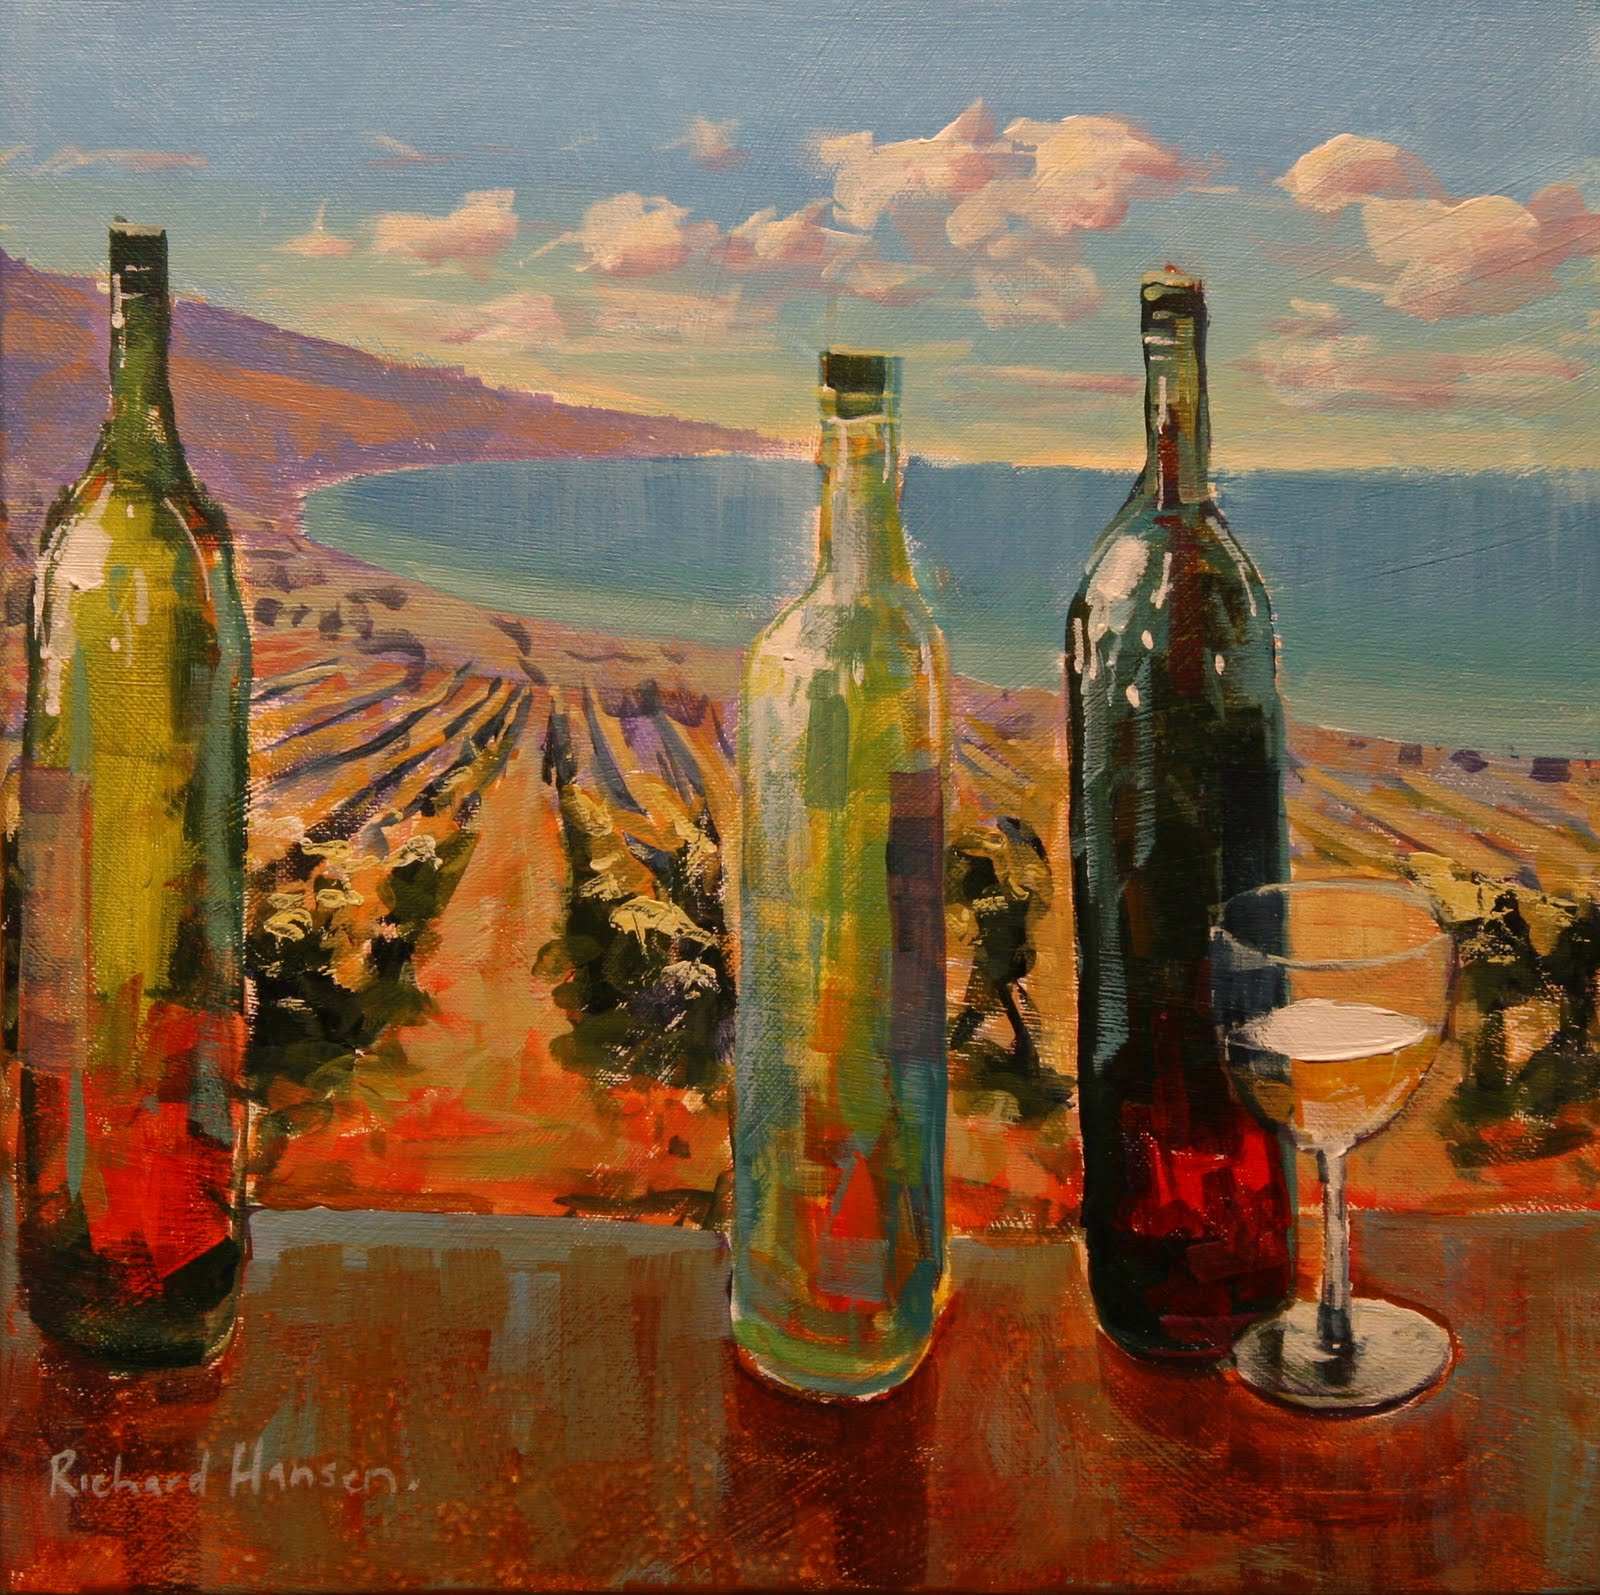 Richard hansen painting notes wine theme for Wine and painting mn